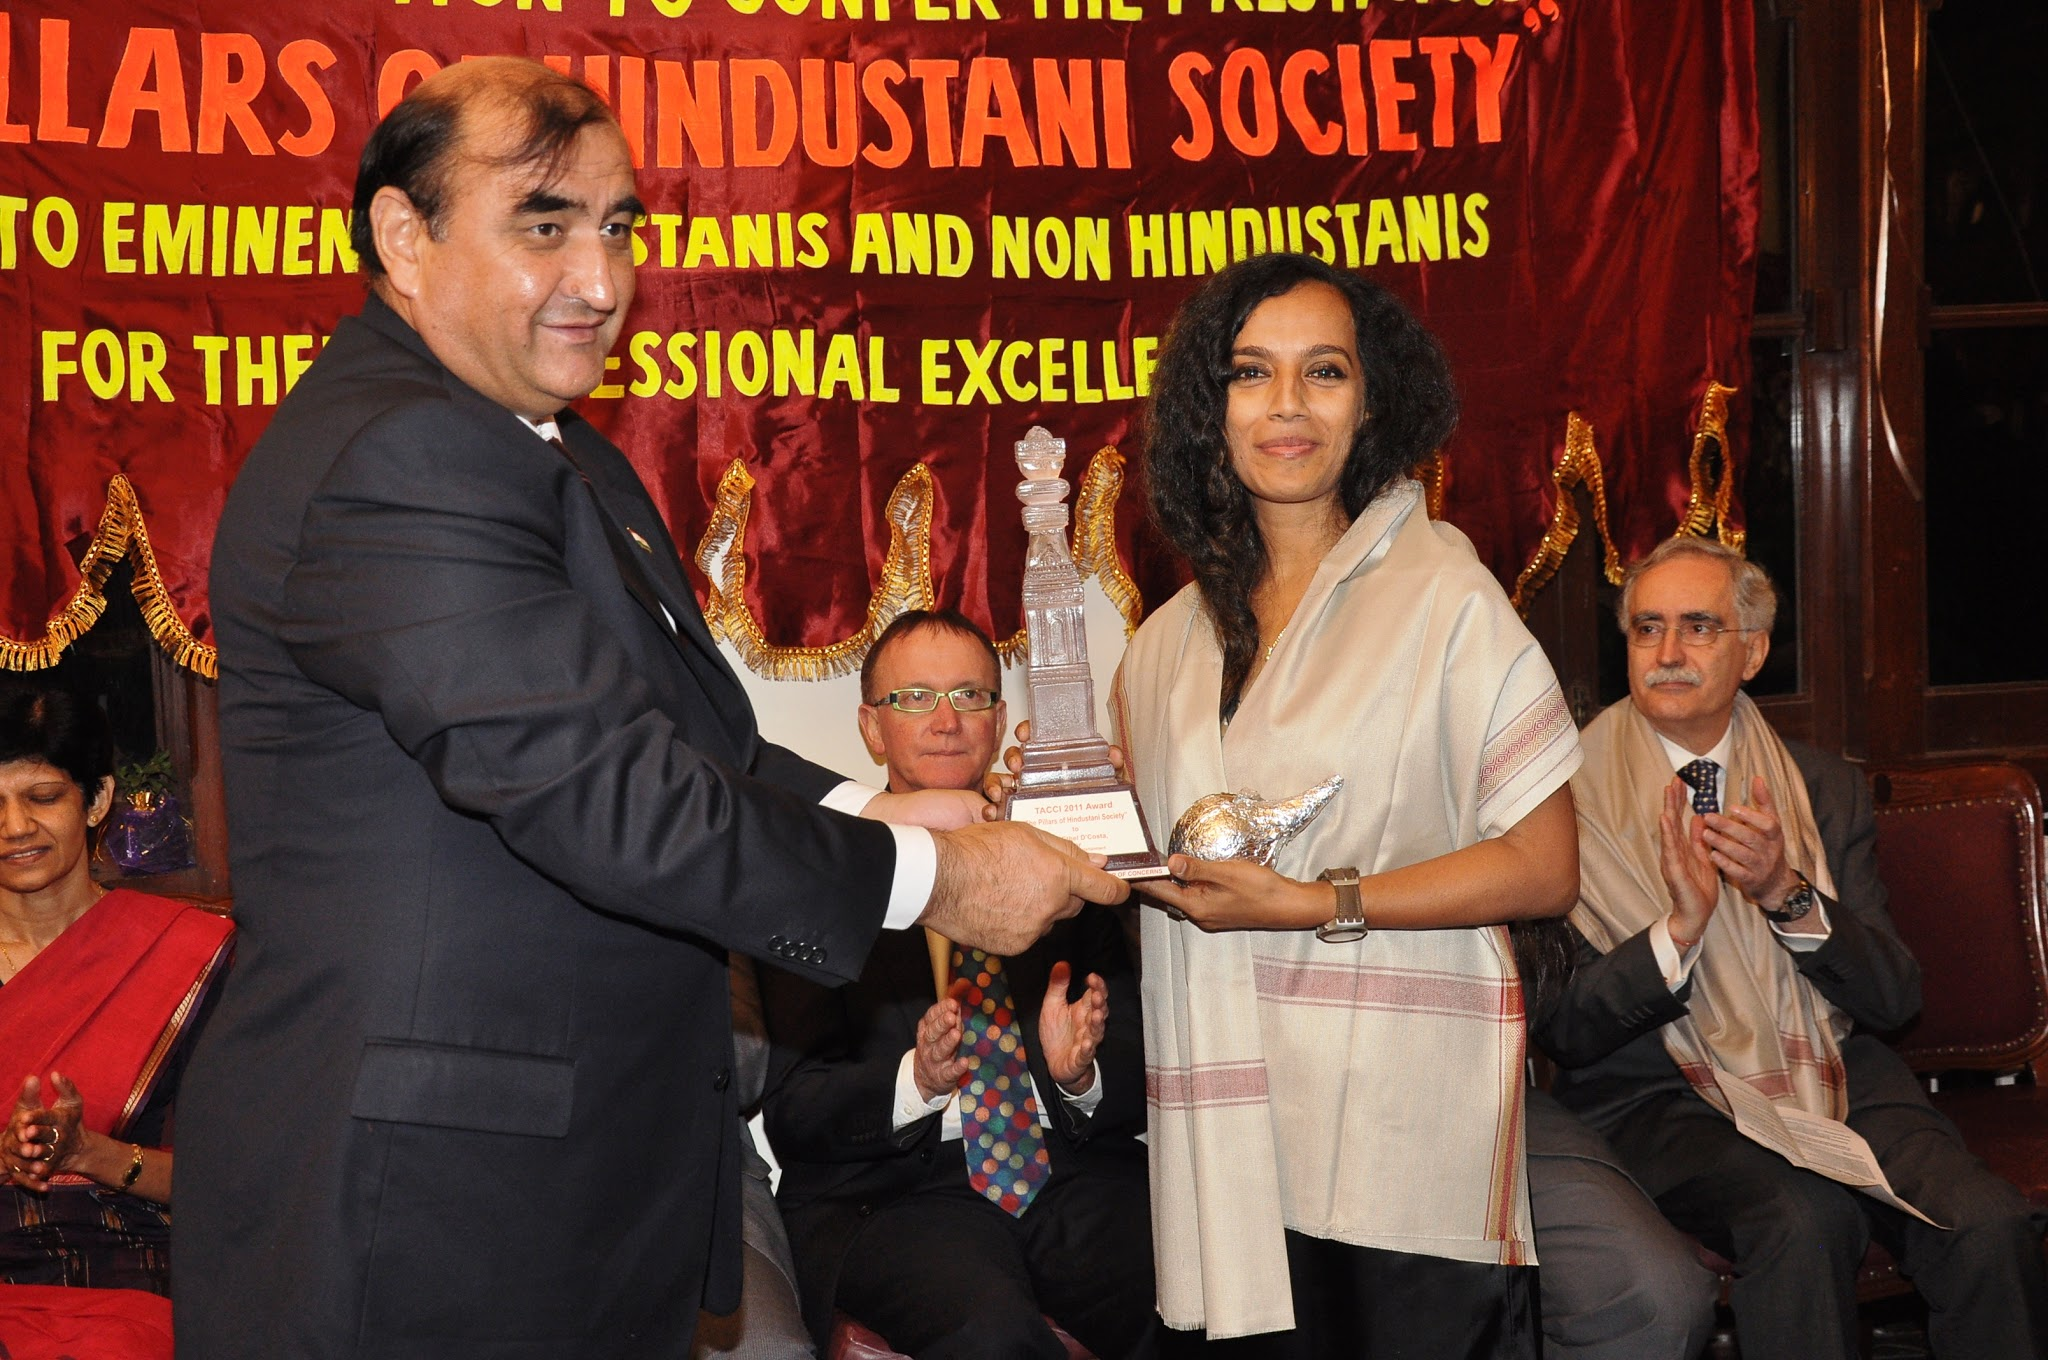 pillar-of-hindustani-society-award